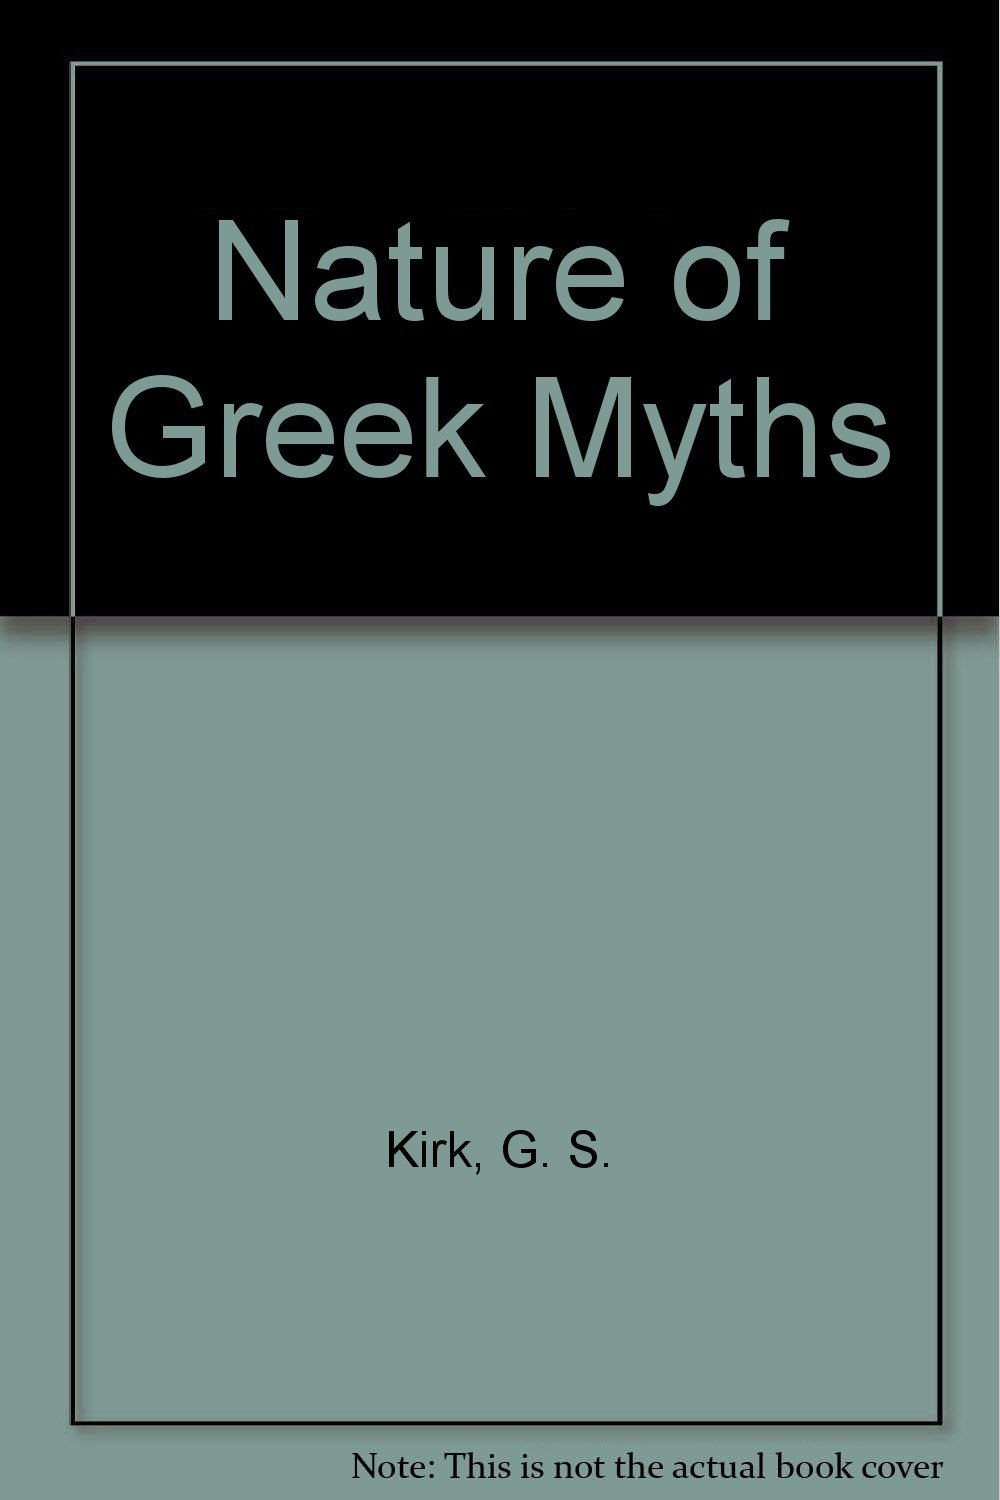 The Nature of Greek Myths: G. S. Kirk: 9780879510312: Amazon.com: Books